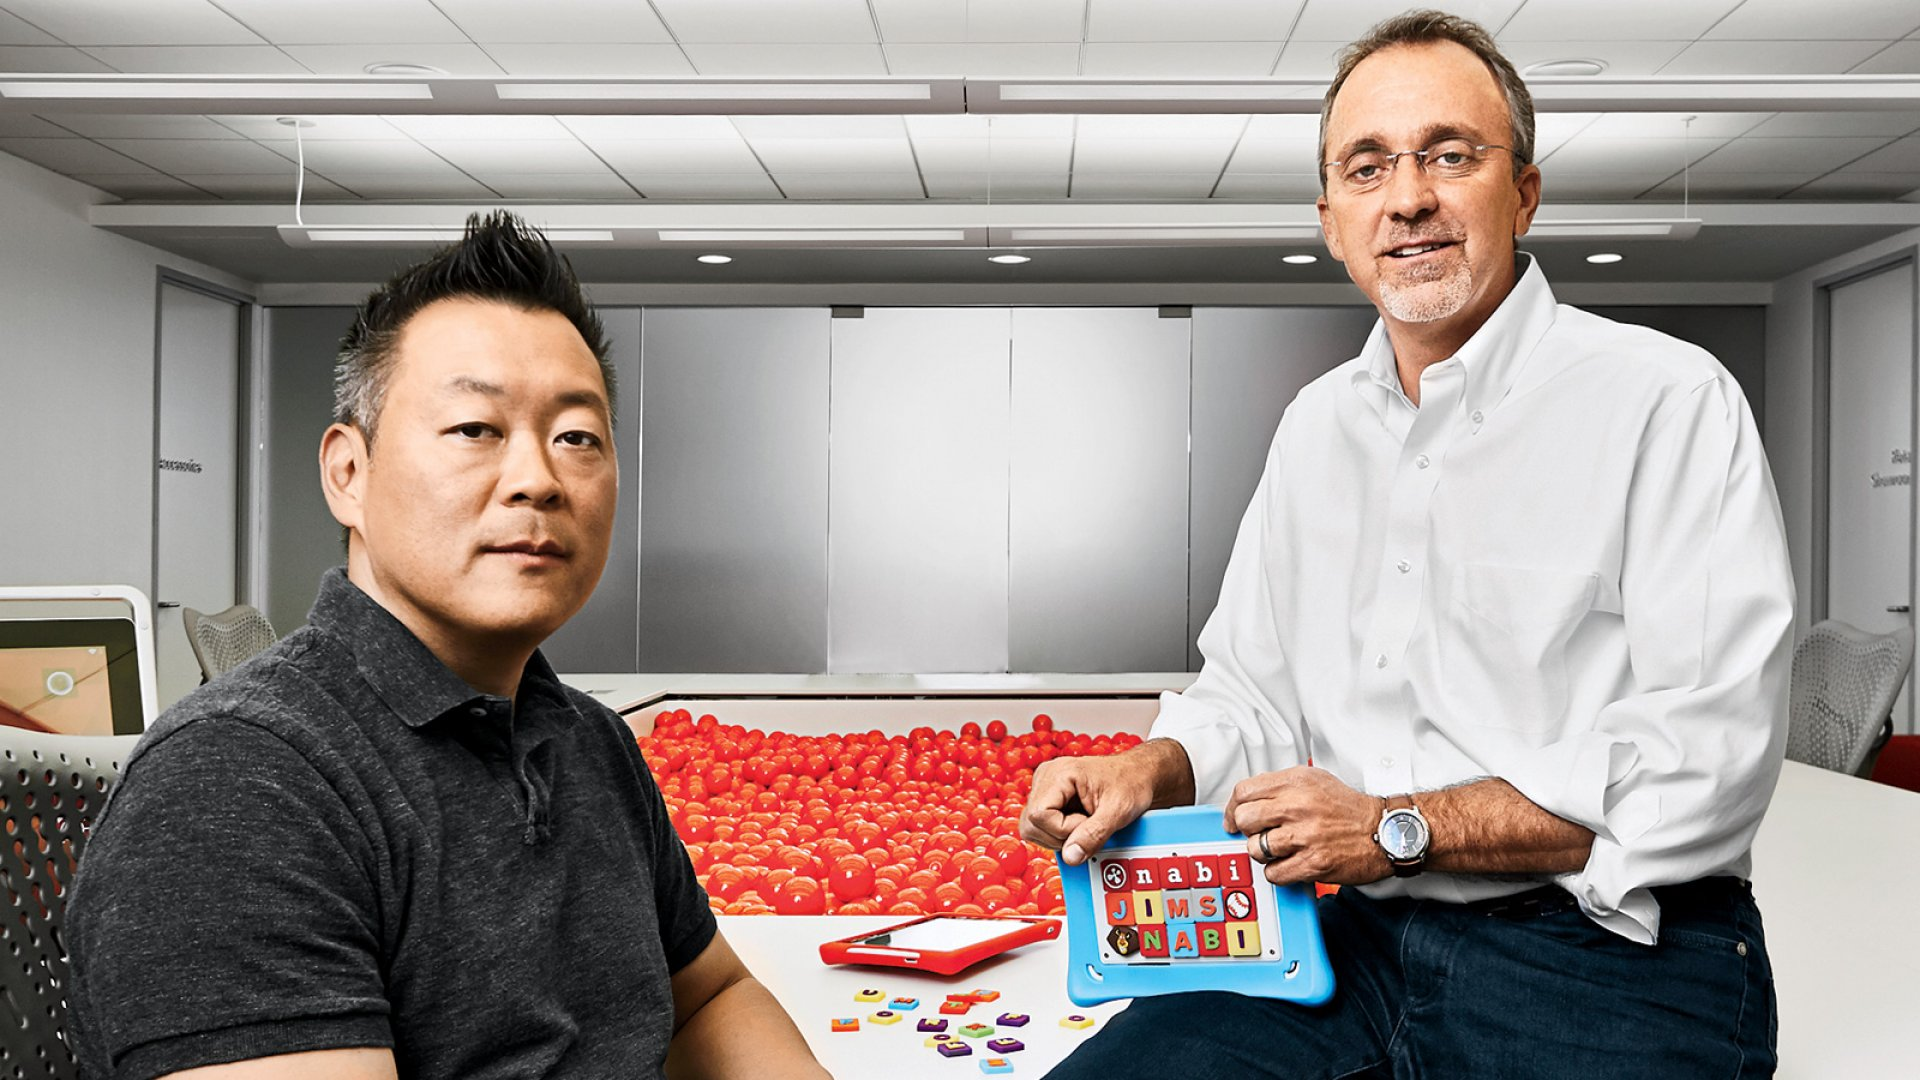 With CEO Jim Mitchell and co-founder Robb Fujioka running the show, Fuhu landed the title spot on the 2014 list of the fastest growing private U.S. companies.